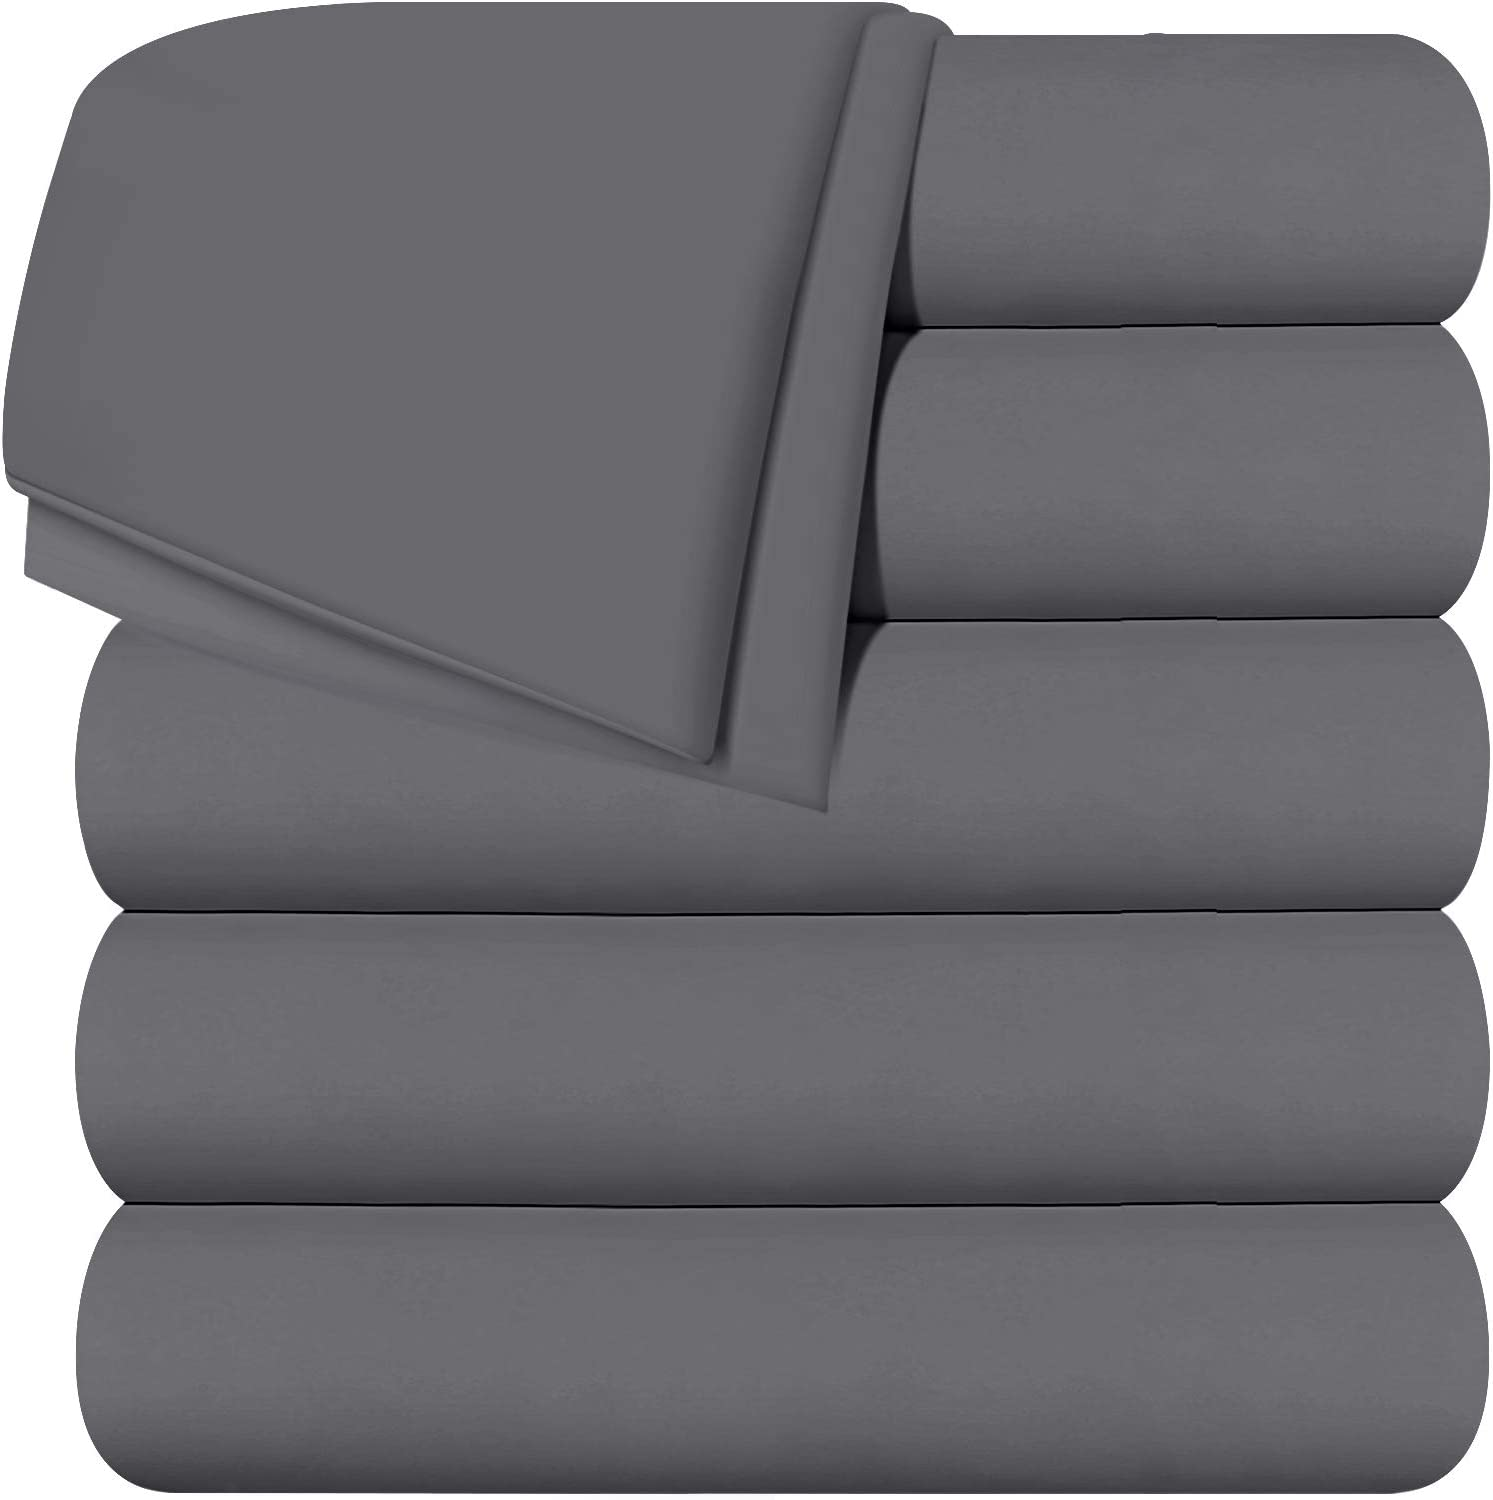 Utopia Bedding Flat Sheets - Pack of 6 - Soft Brushed Microfiber Fabric - Shrinkage & Fade Resistant Top Sheet - Easy Care (Queen, Grey)